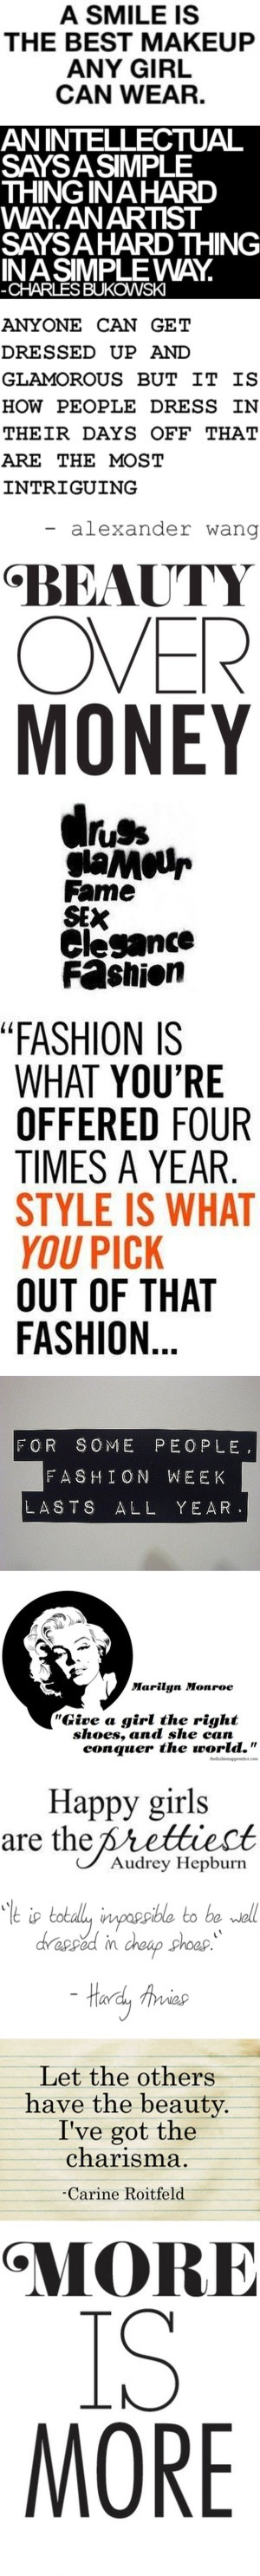 """""""Words, Quotes, Typhography: All About Fashion"""" by queenofdiam0nds ❤ liked on Polyvore"""